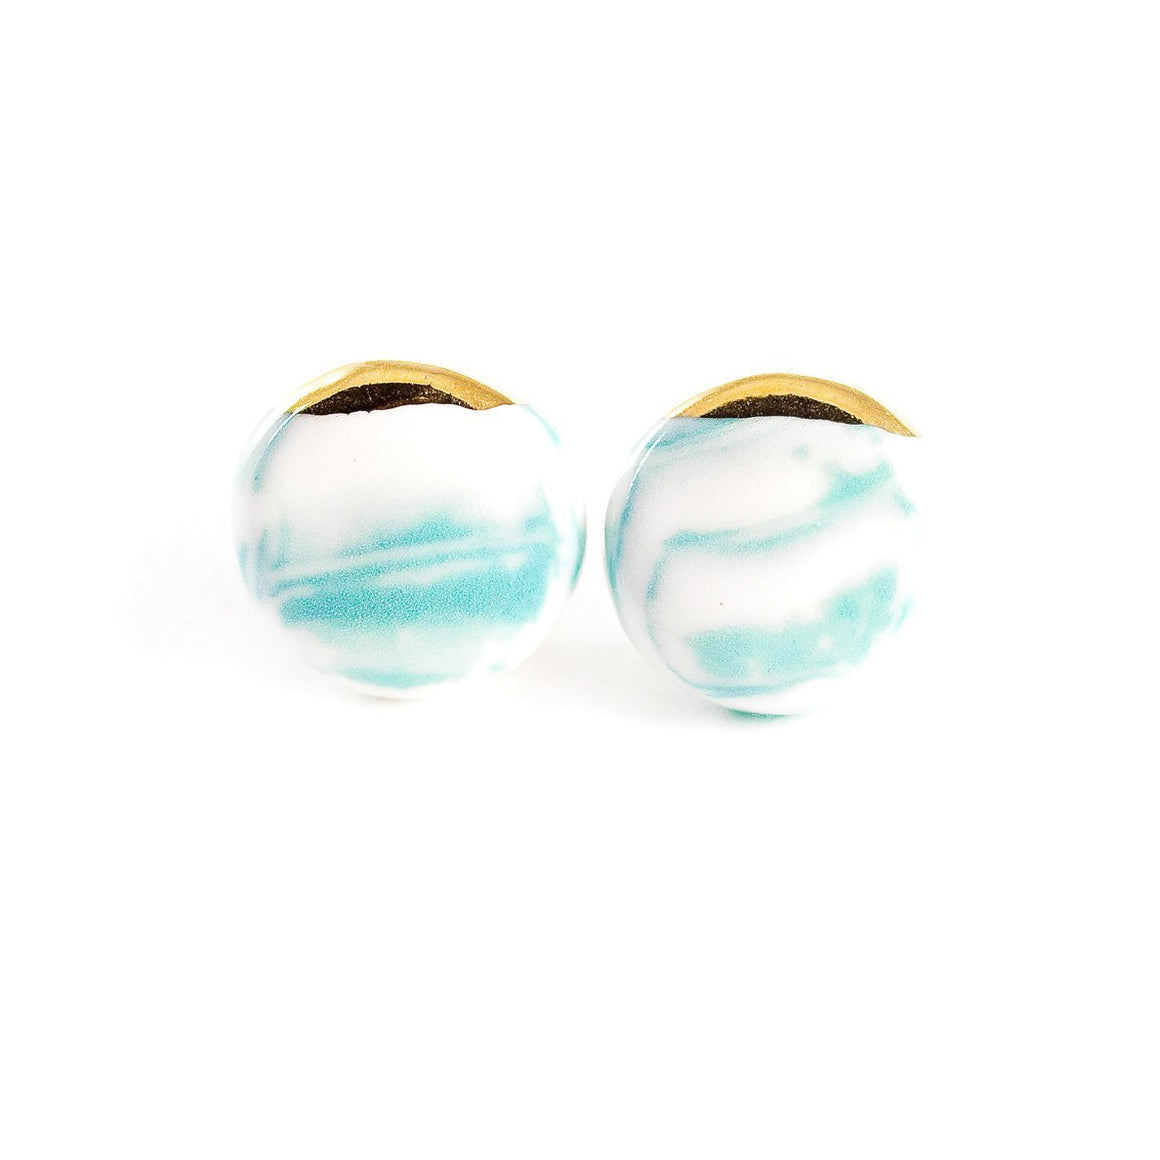 Cecolors Earrings Turquoise Kollidea Accessories